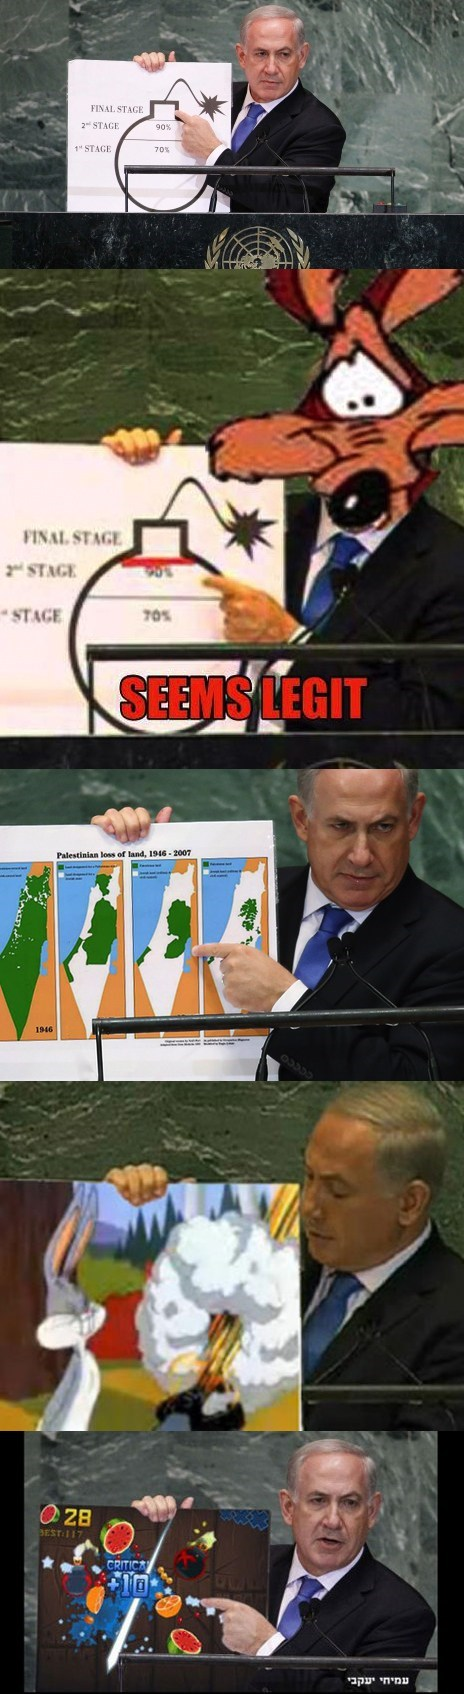 benjamin netanyahu bomb fruit ninja internet looney tunes photoshop